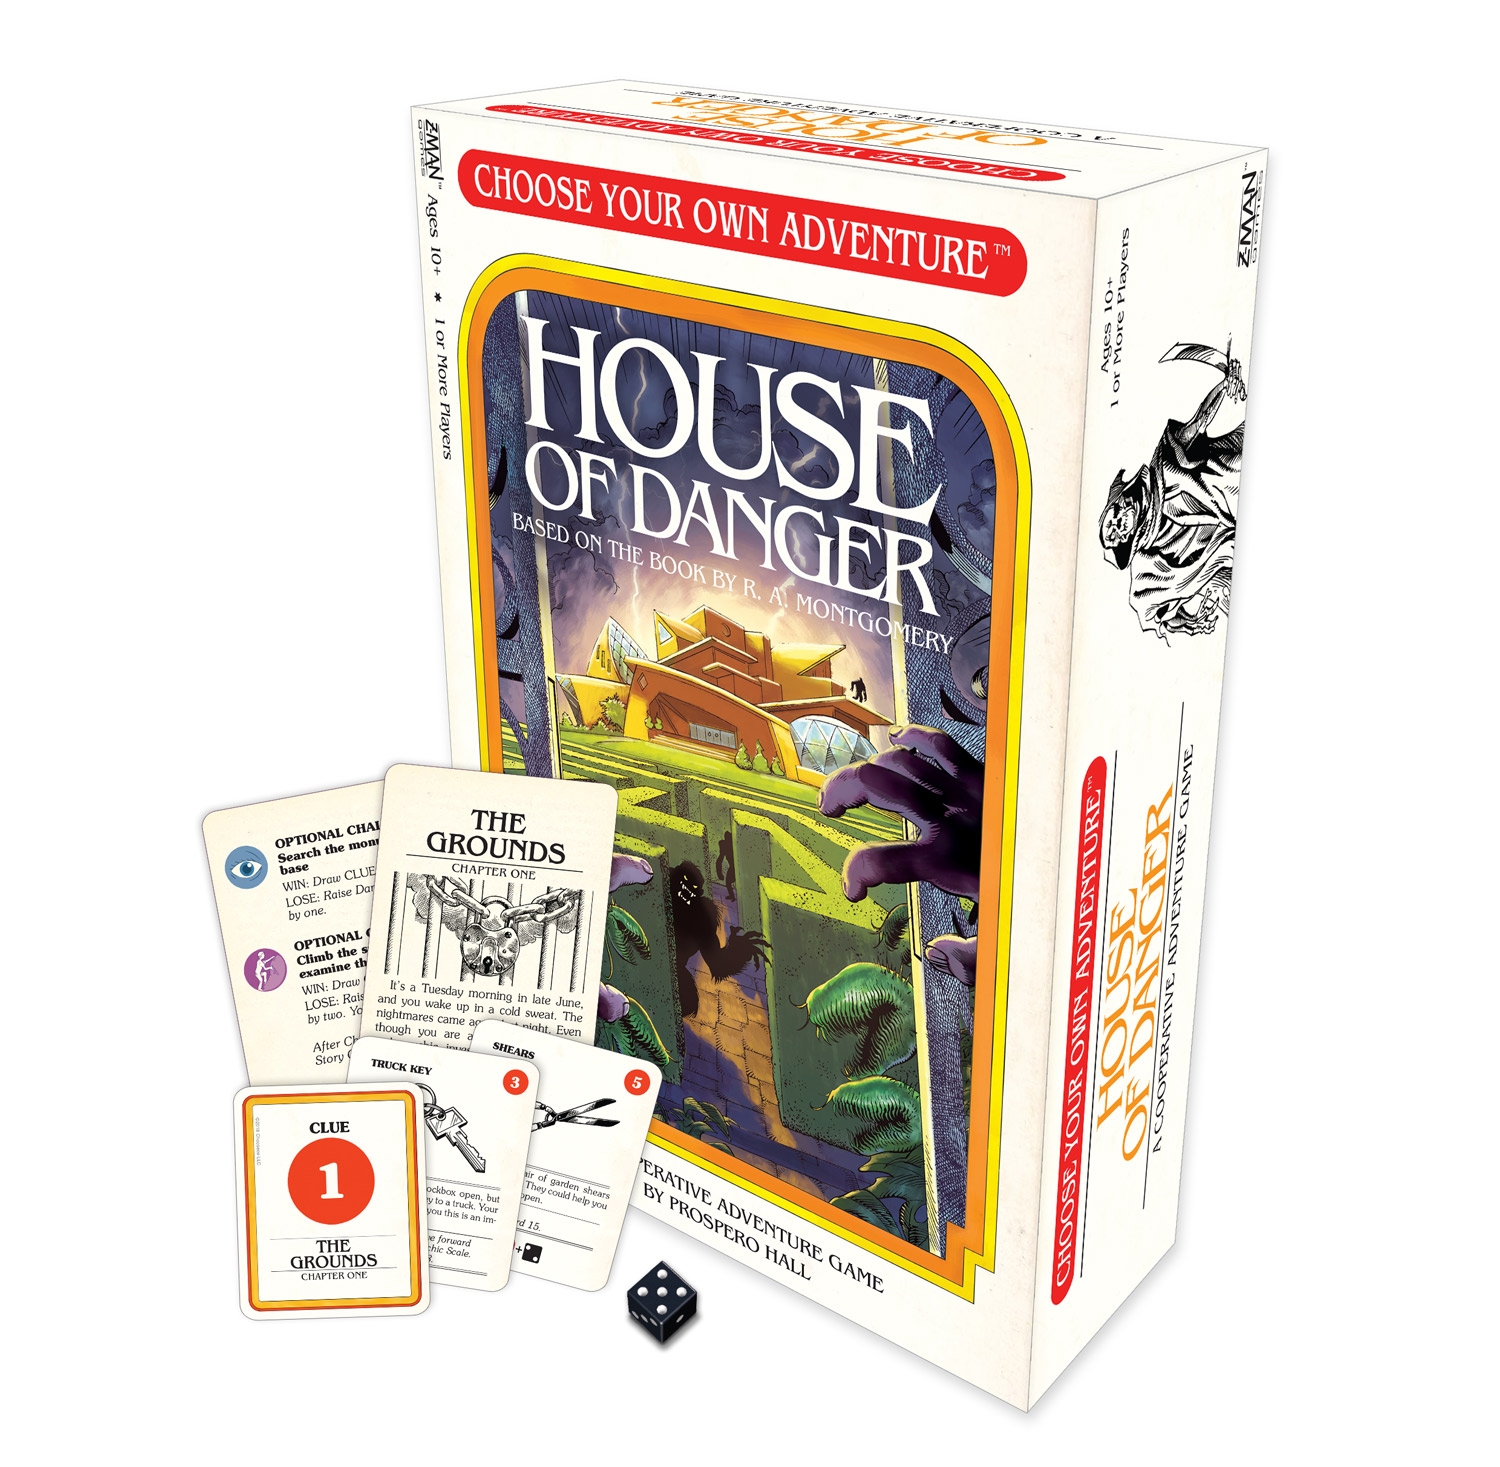 Choose Your Own Adventure The Game Finally Coming Soon